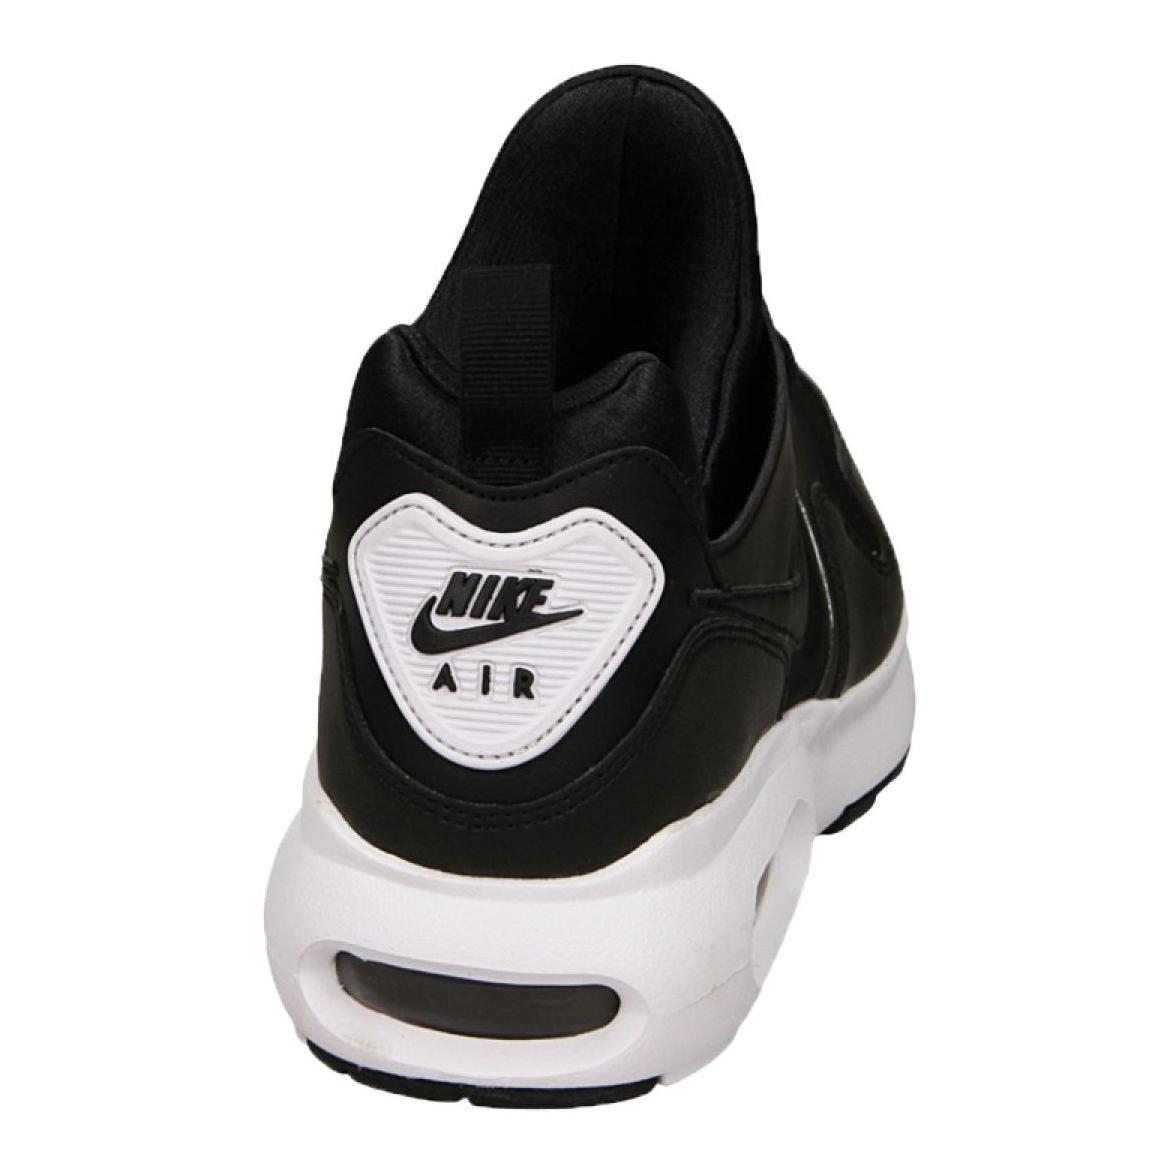 Details about Nike Air Max Prime M 876068 006 shoes black